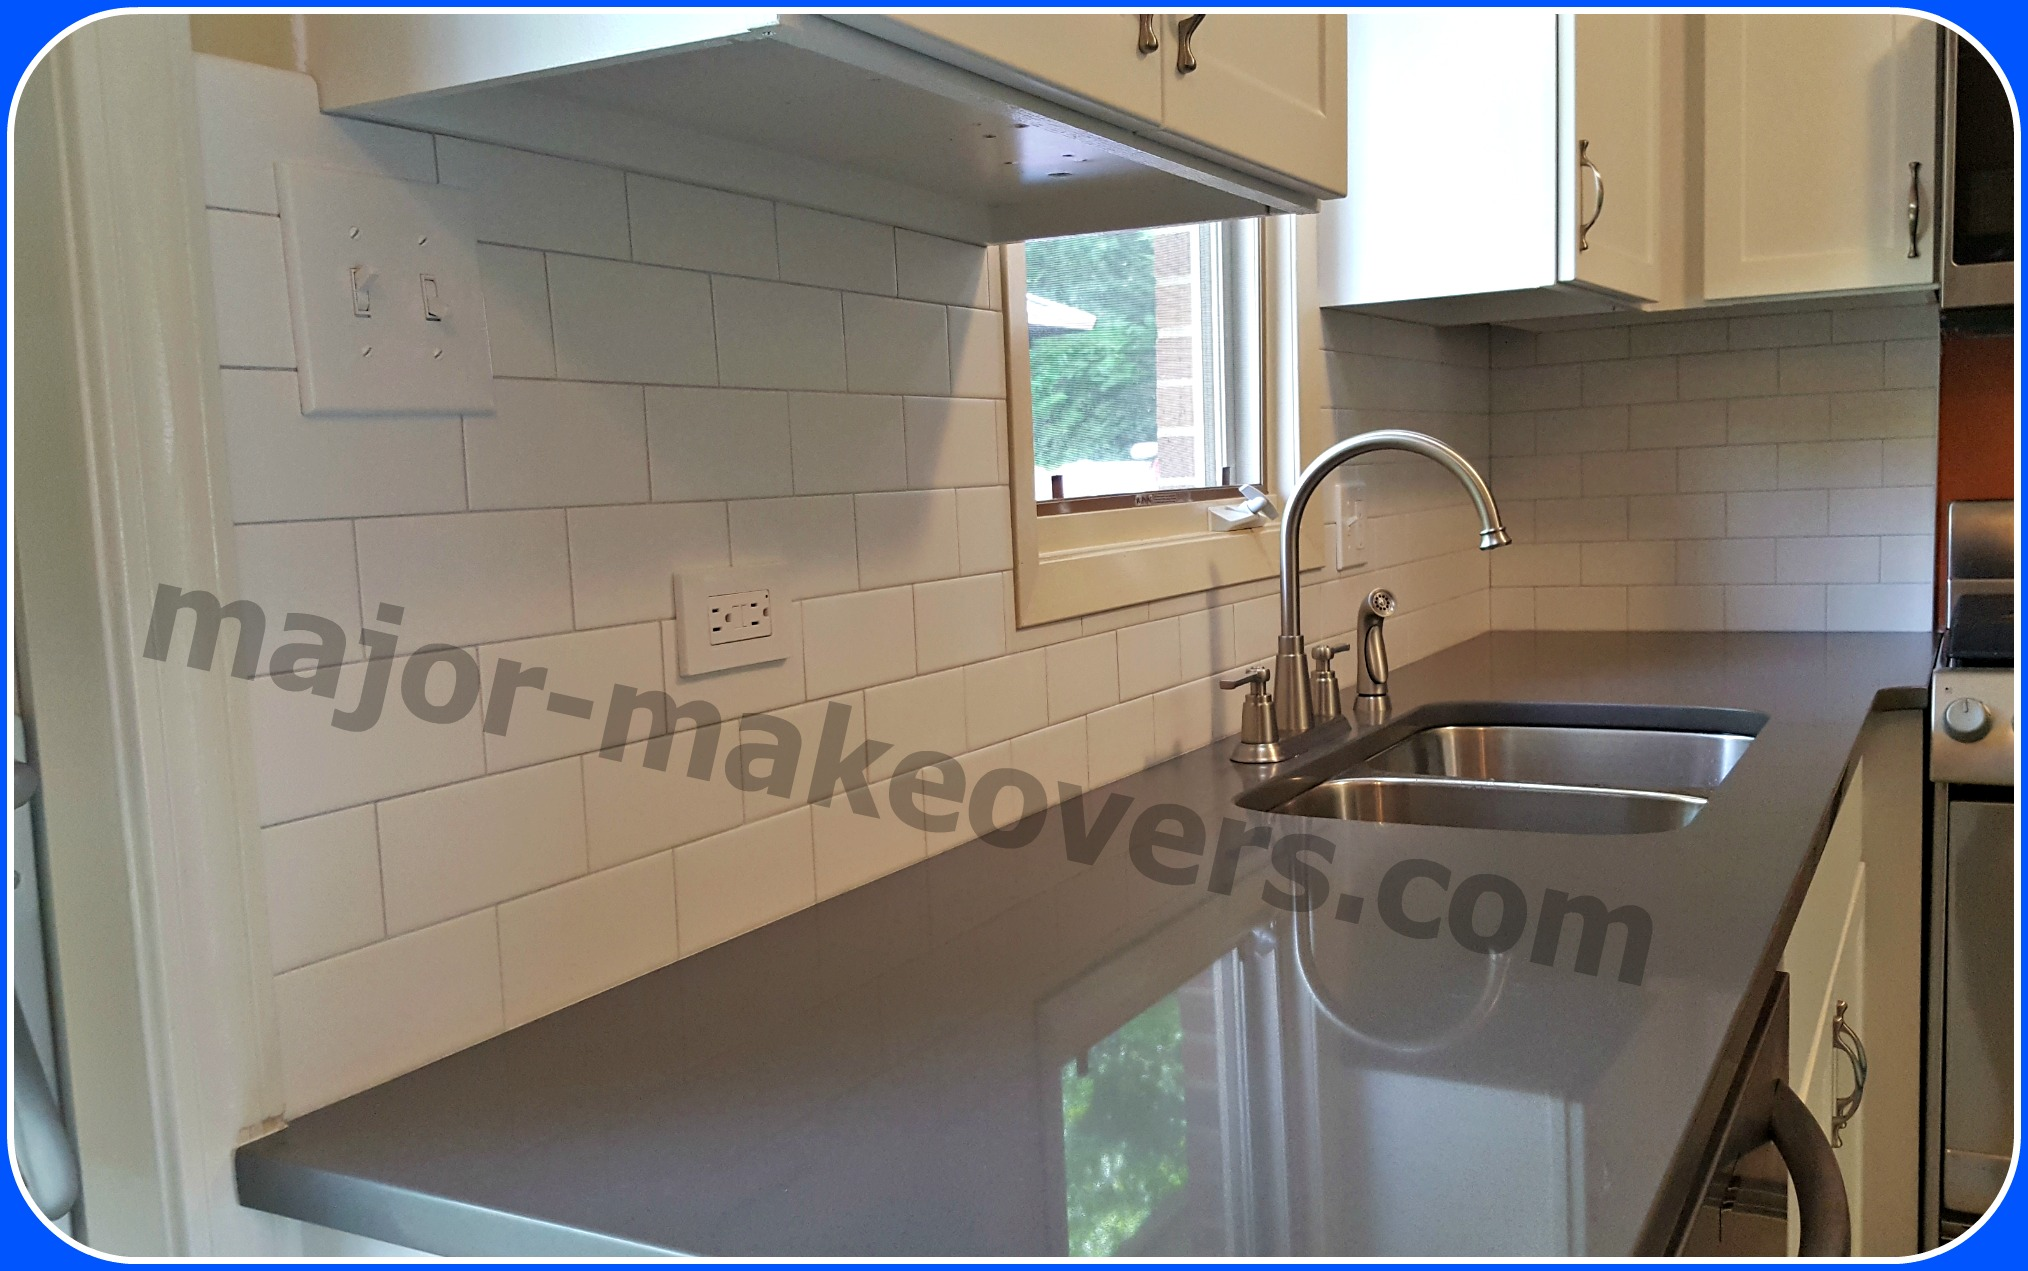 Complete backsplash tile installation. White cabinets and tiles are combined with dark grey countertops. Stainless steel appliances go with metal tile trims and cabinet door knobs and drawer handles.